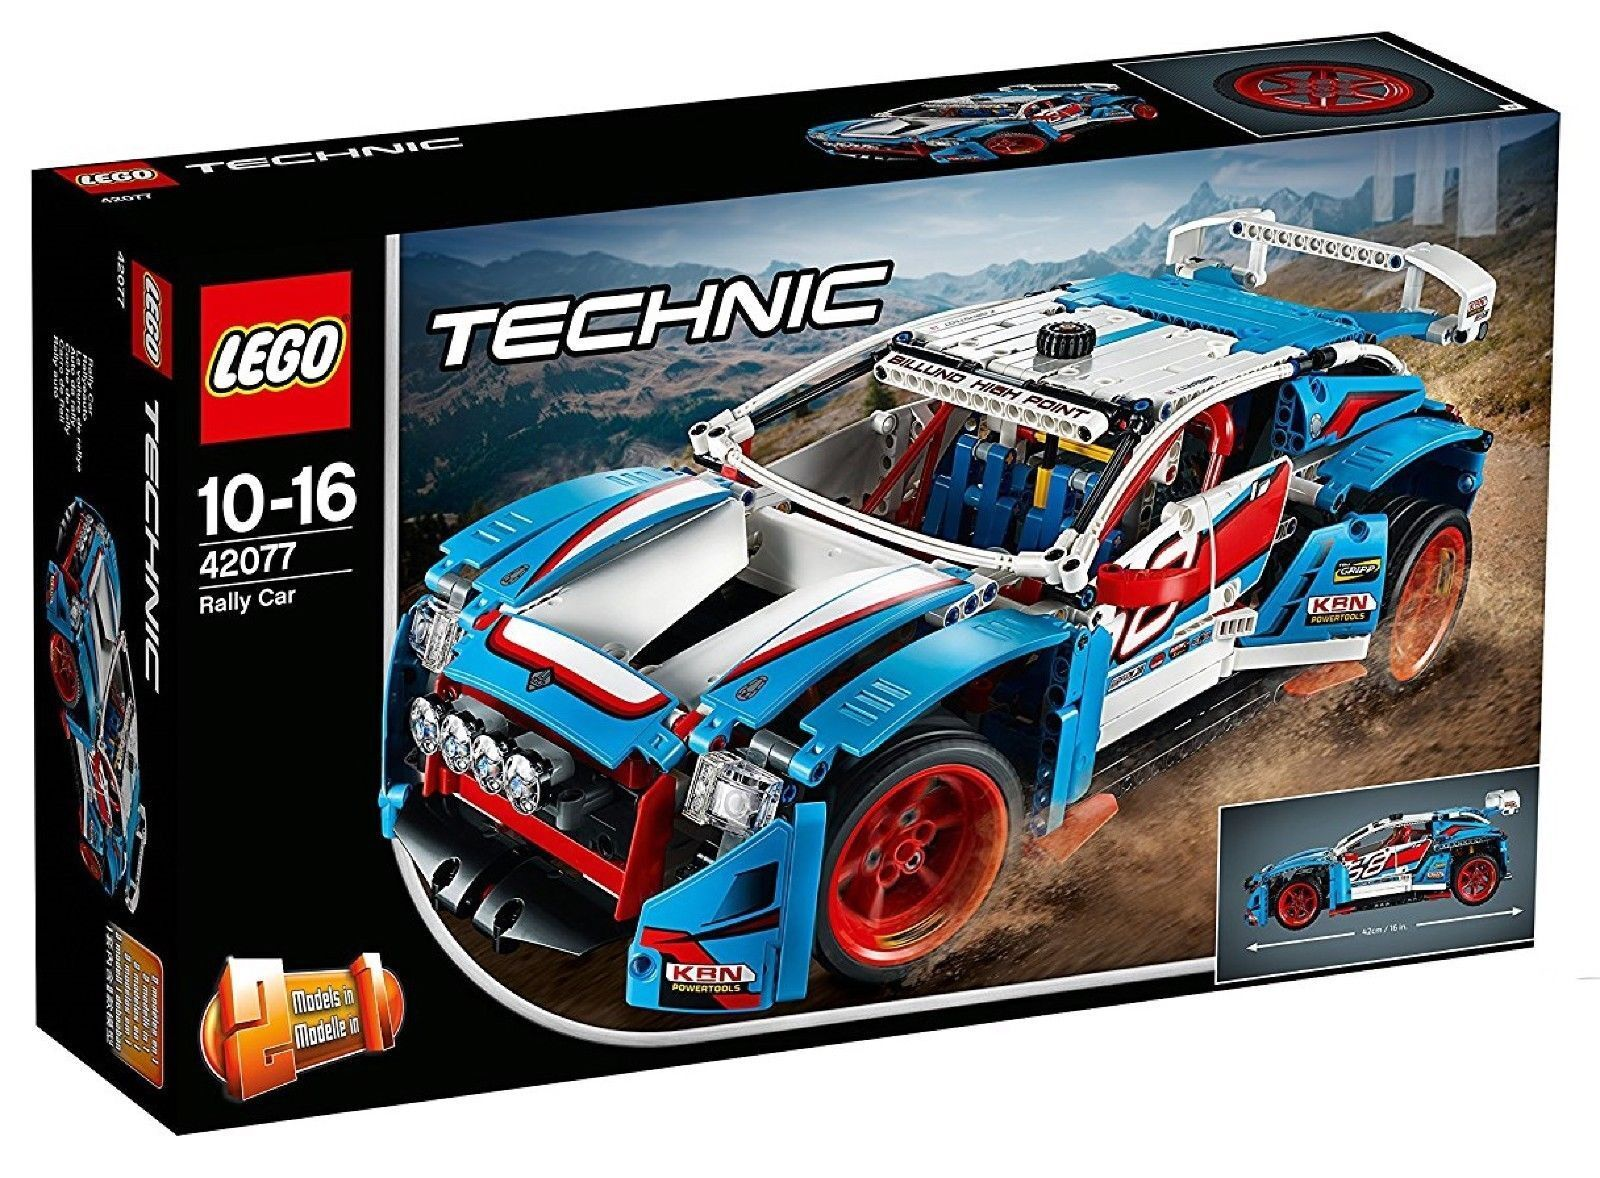 42077 LEGO TECHNIC Auto da Rally